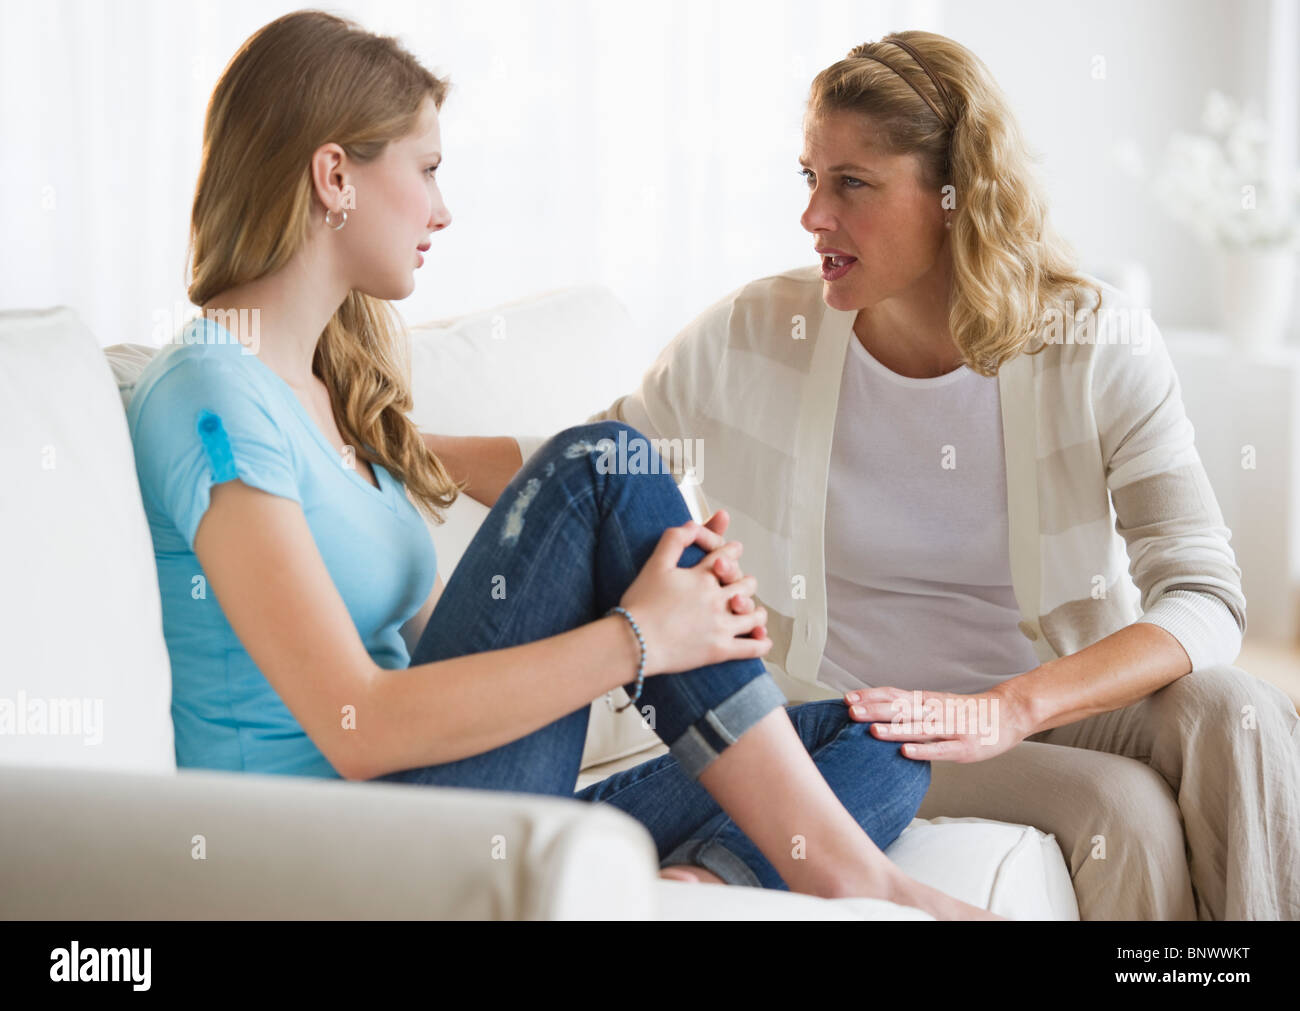 Mother and daughter having an argument - Stock Image